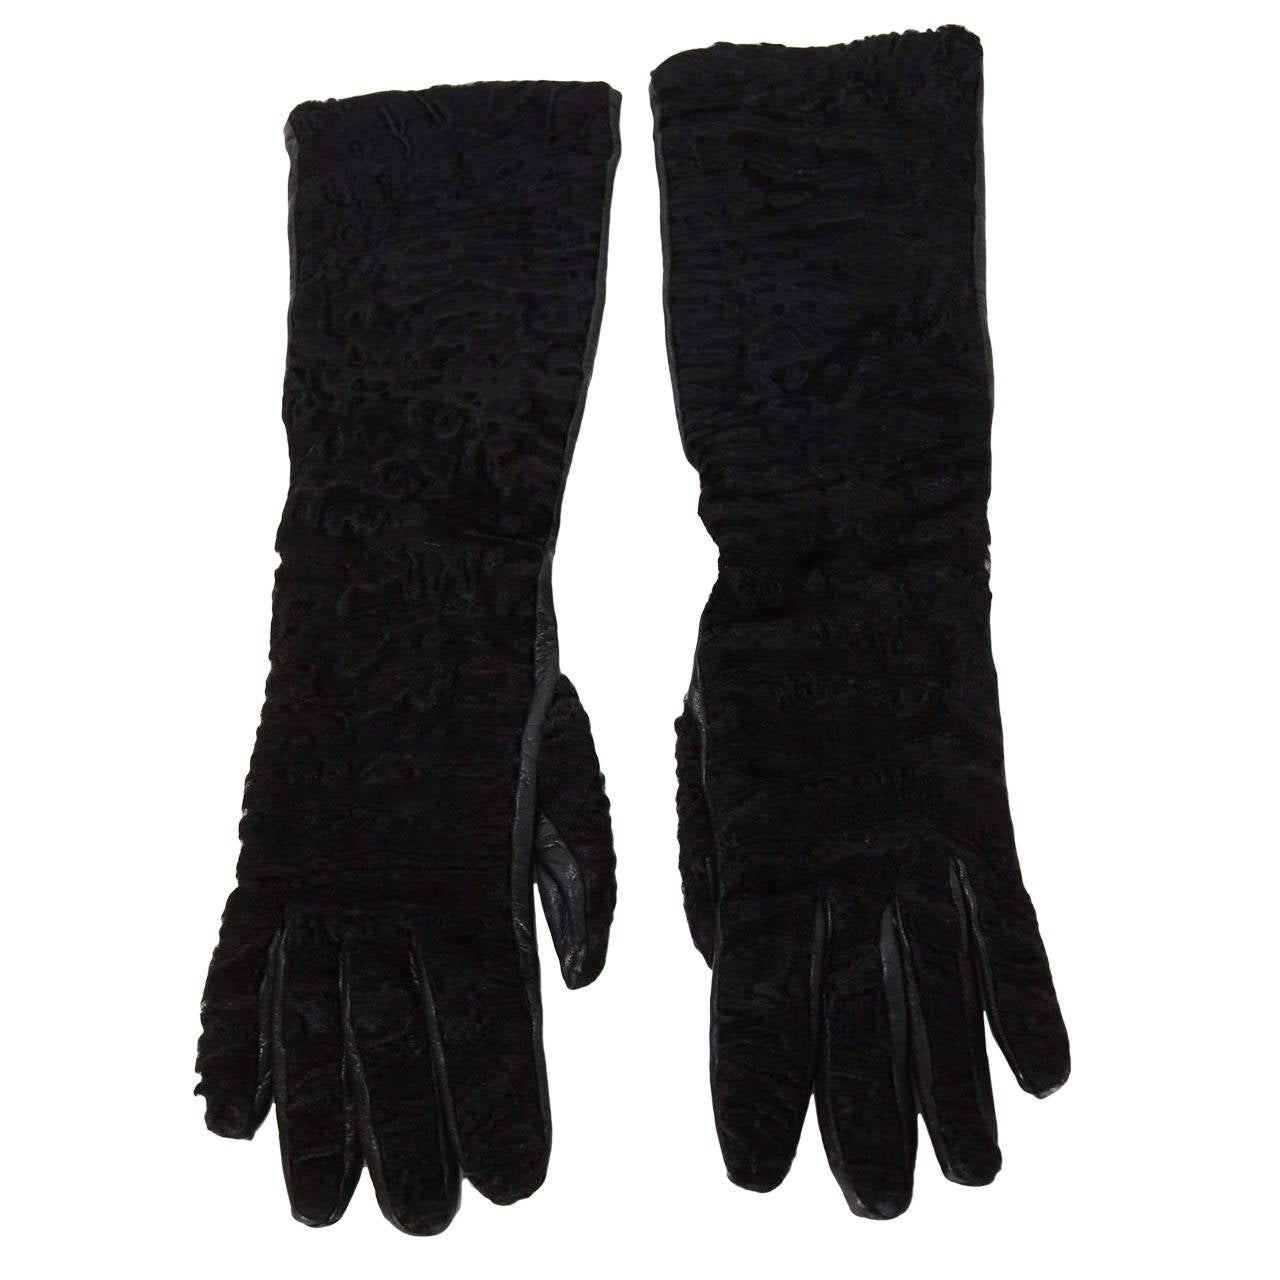 PRADA Black Persian Lamb & Leather Long Gloves sz7 1